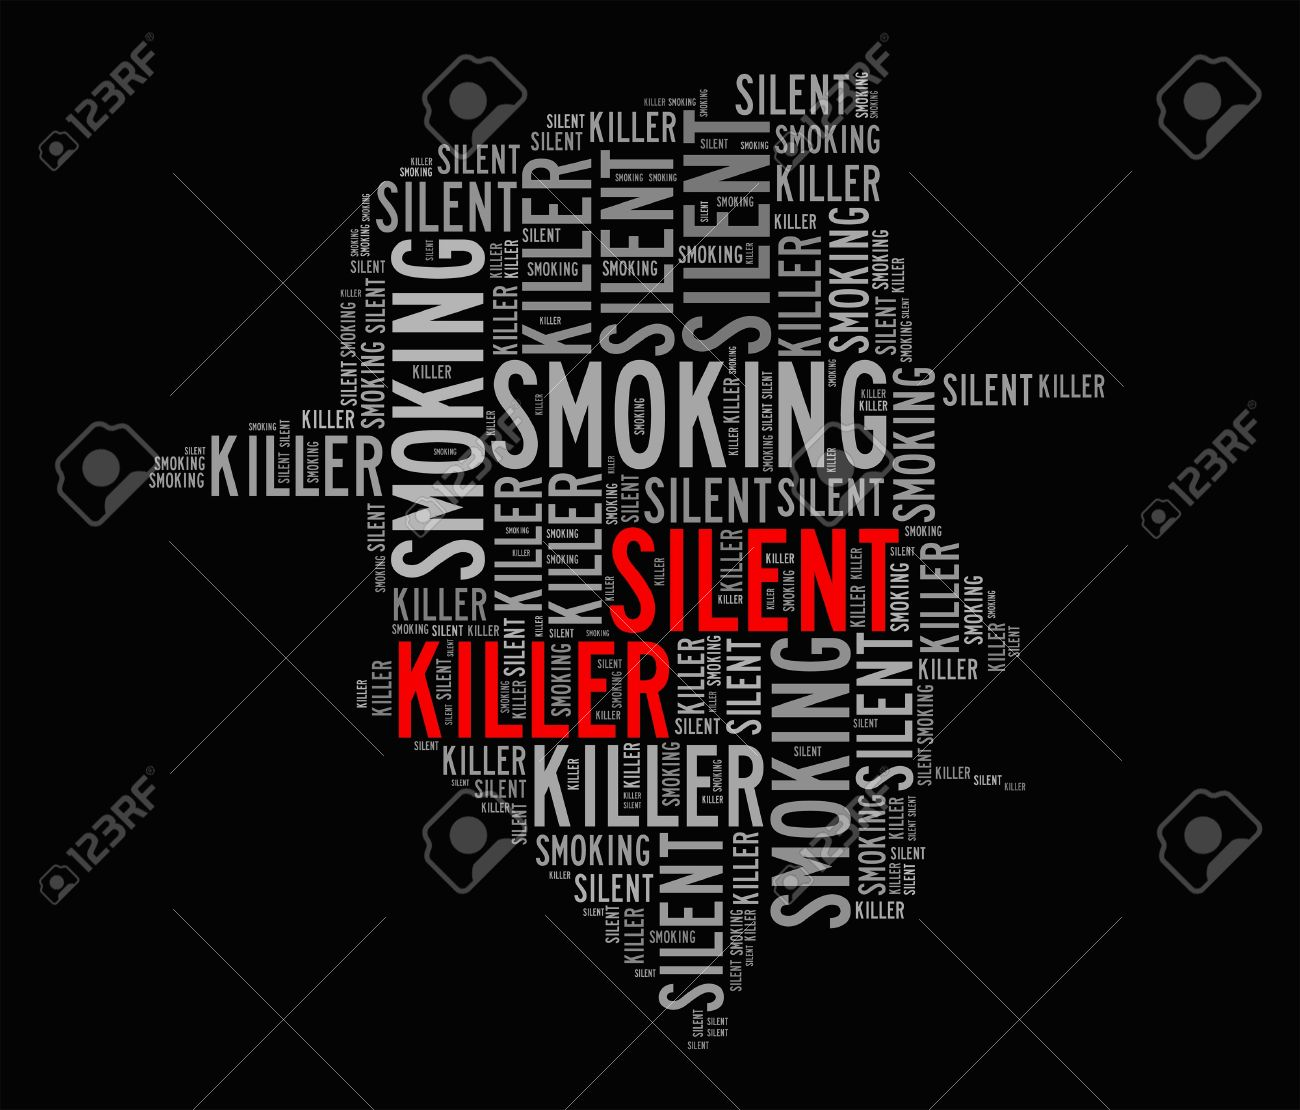 Smoking is silent killer info-text graphics and arrangement concept  word clouds Stock Photo - 18003380